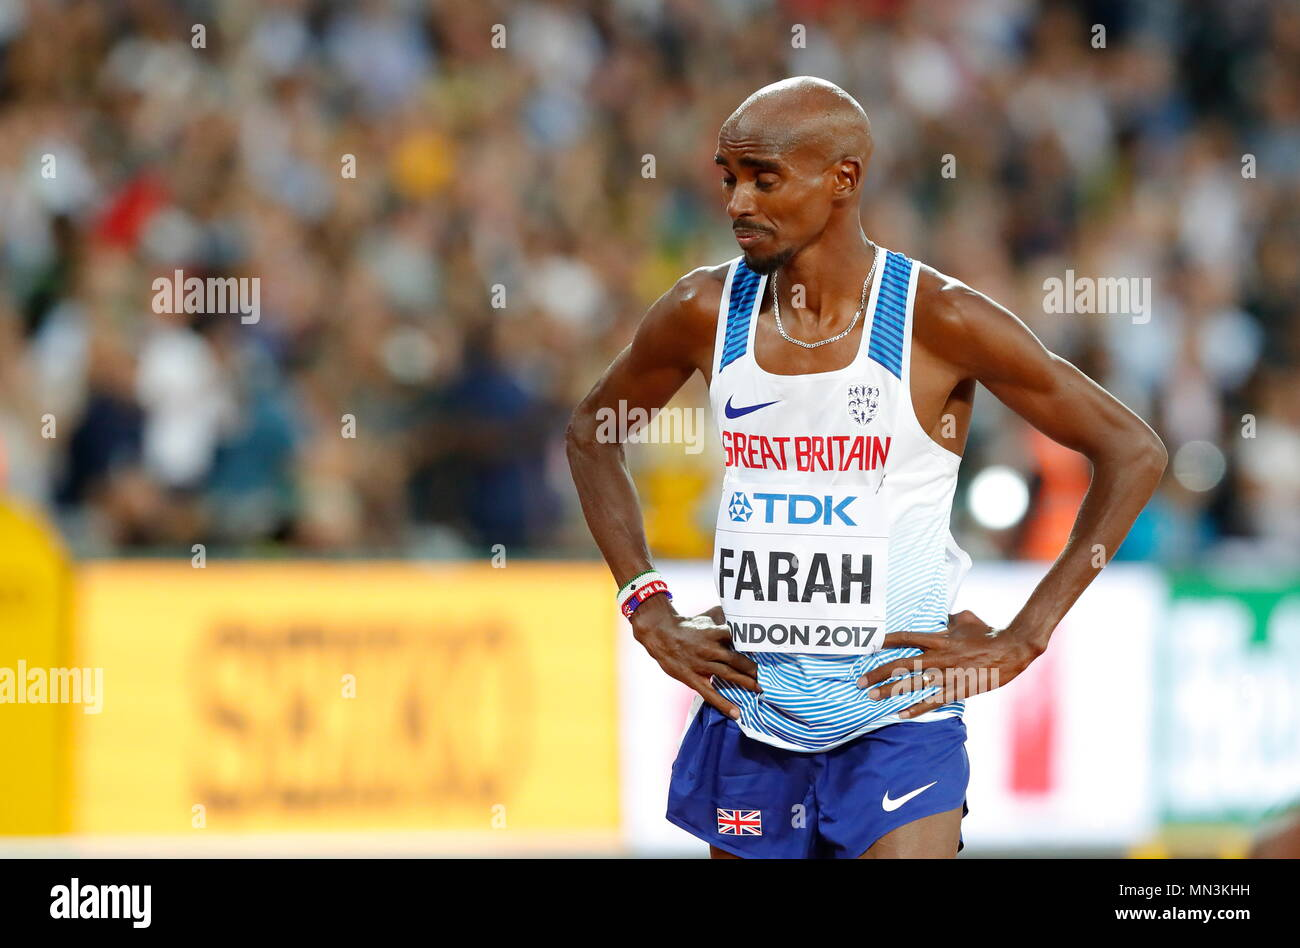 LONDON, ENGLAND - AUGUST 12: Mo Farah of Great Britain reacts after finishing second in the Men's 5000 Metres Final during day nine of the 16th IAAF World Athletics Championships at the London Stadium on August 12, 2017 in London, United Kingdom --- Image by © Paul Cunningham - Stock Image